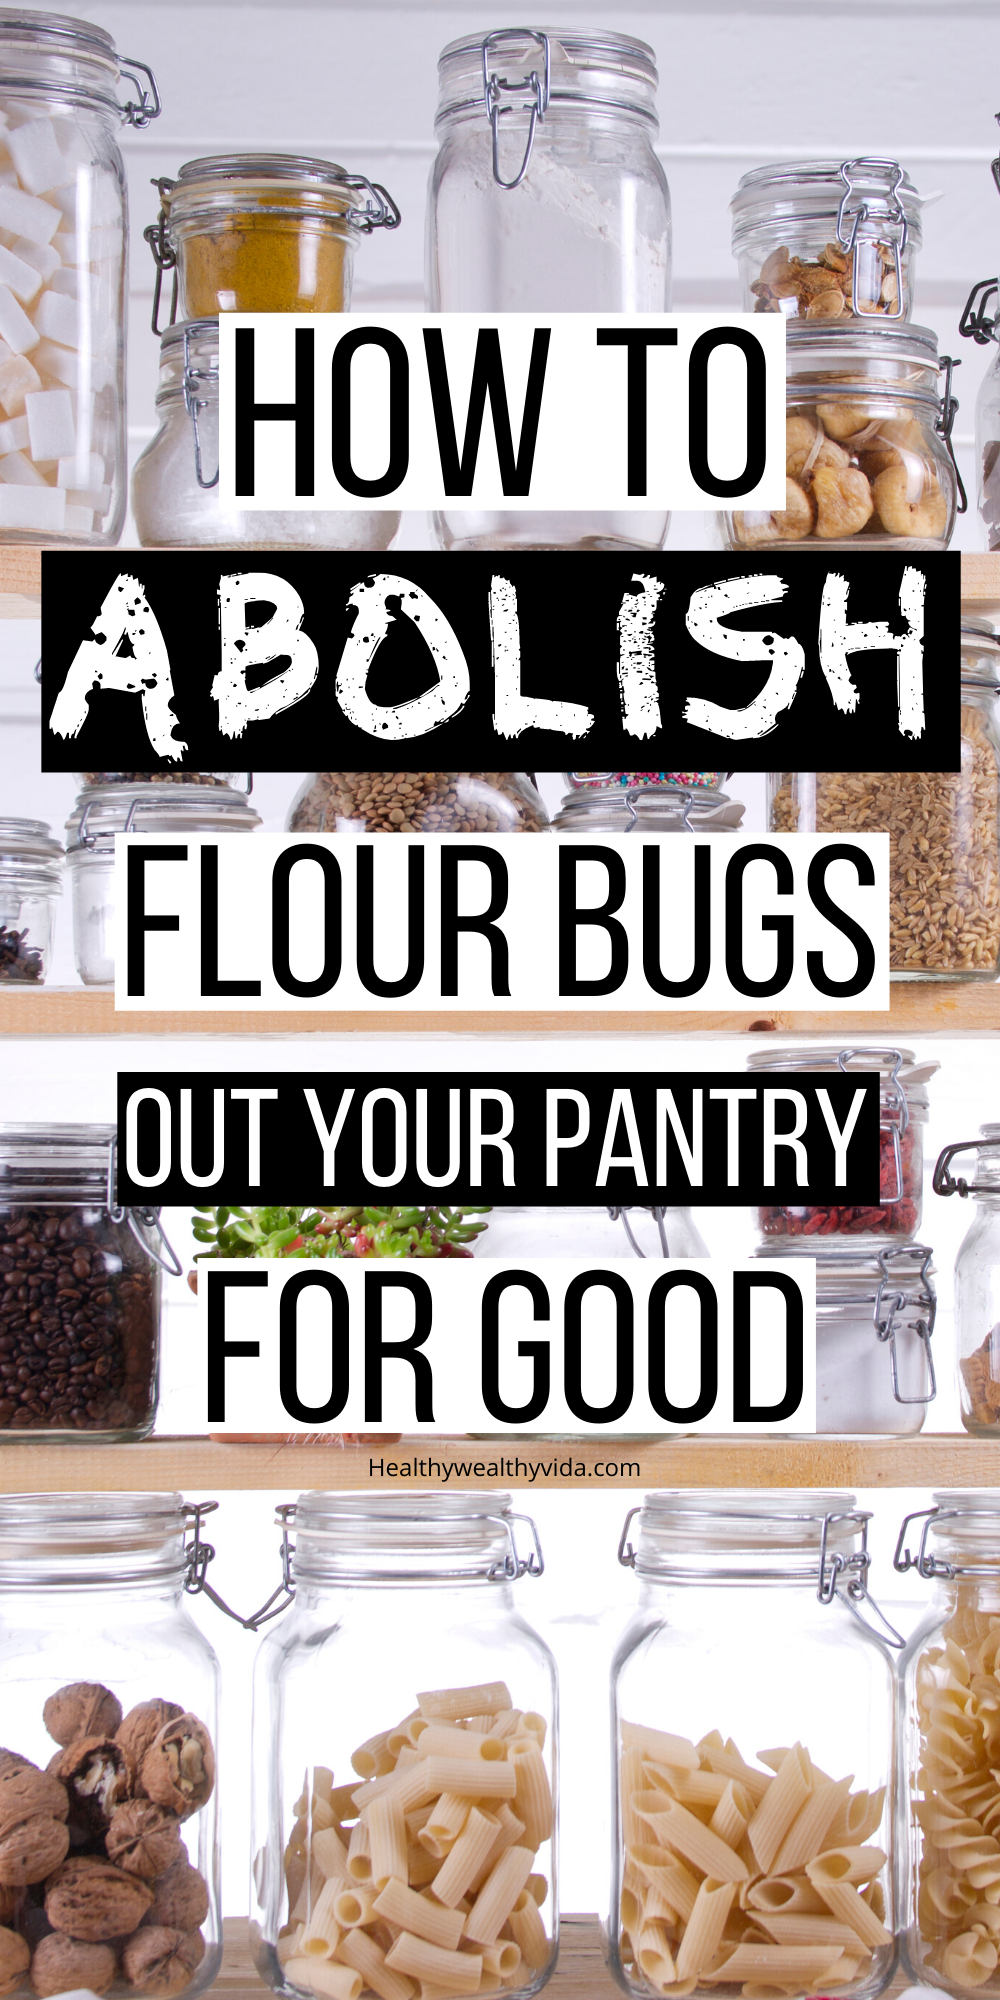 How To Get Rid Of Weevils In My Pantry